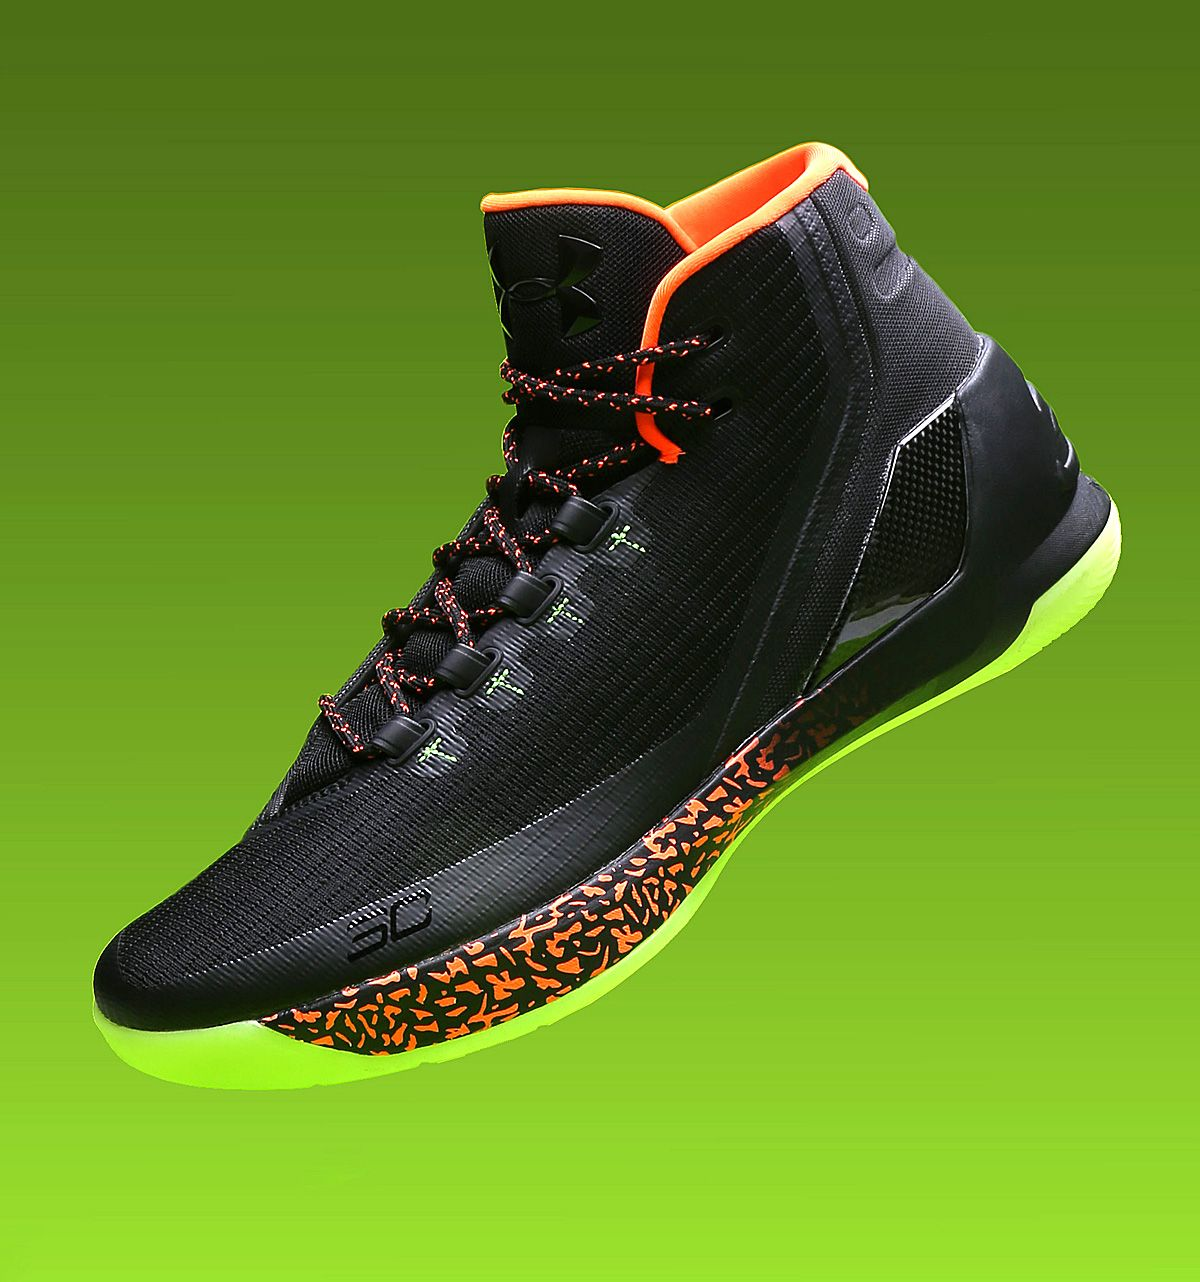 bc4de93136af Under Armour Curry 3 Lights Out